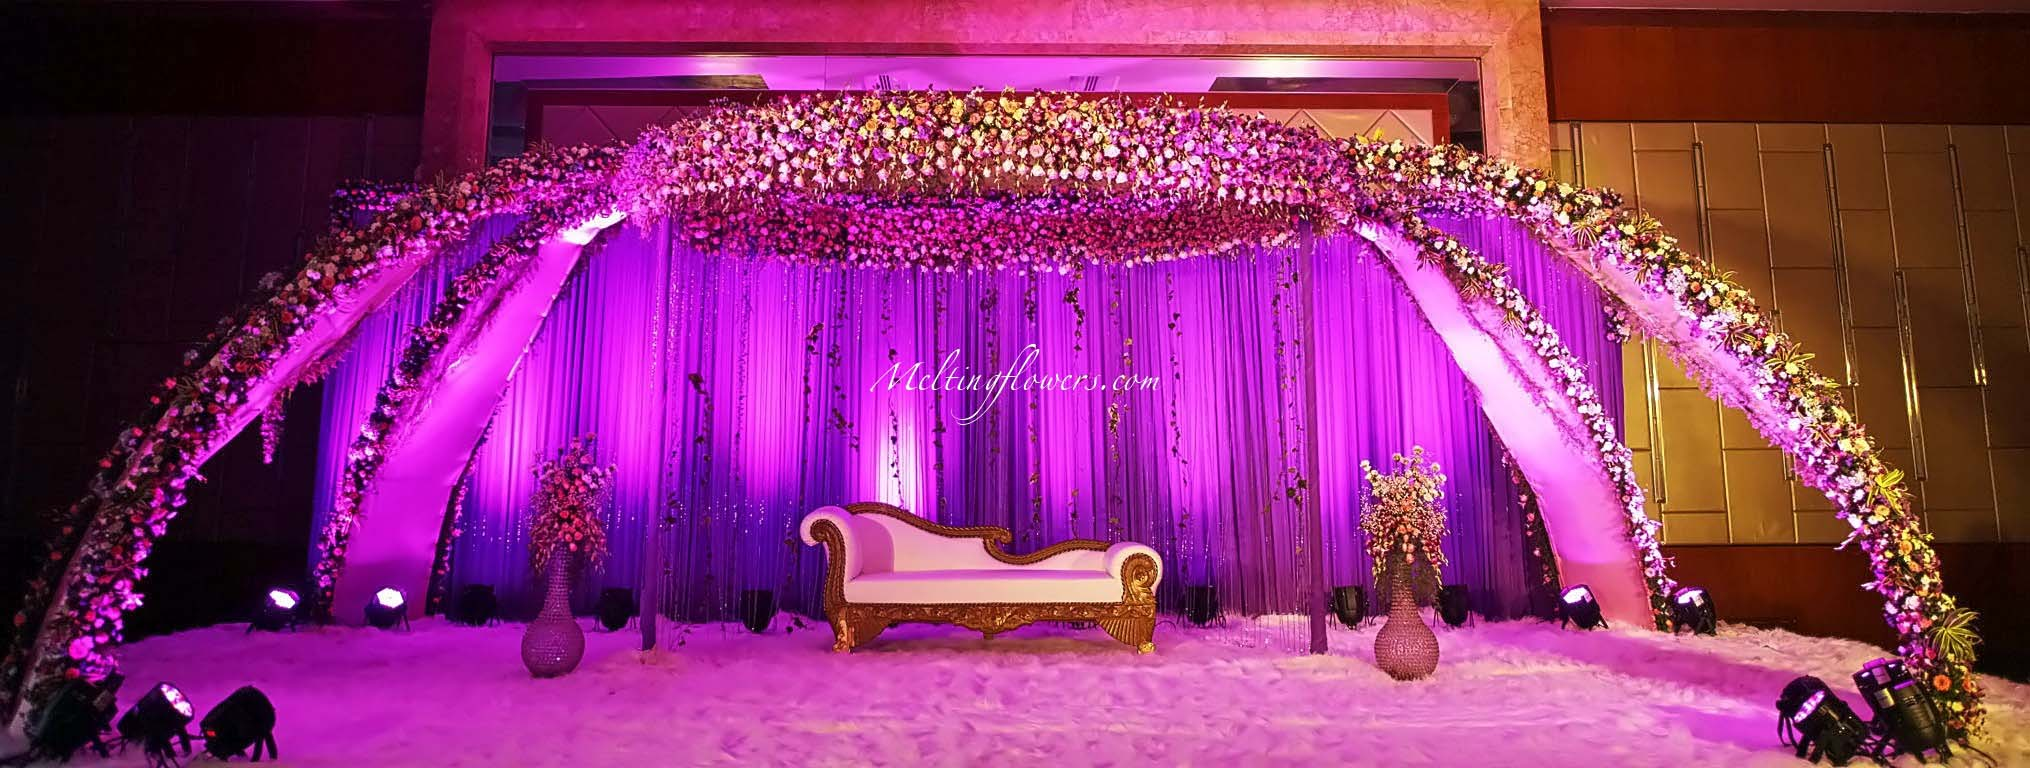 Wedding Gate Decoration